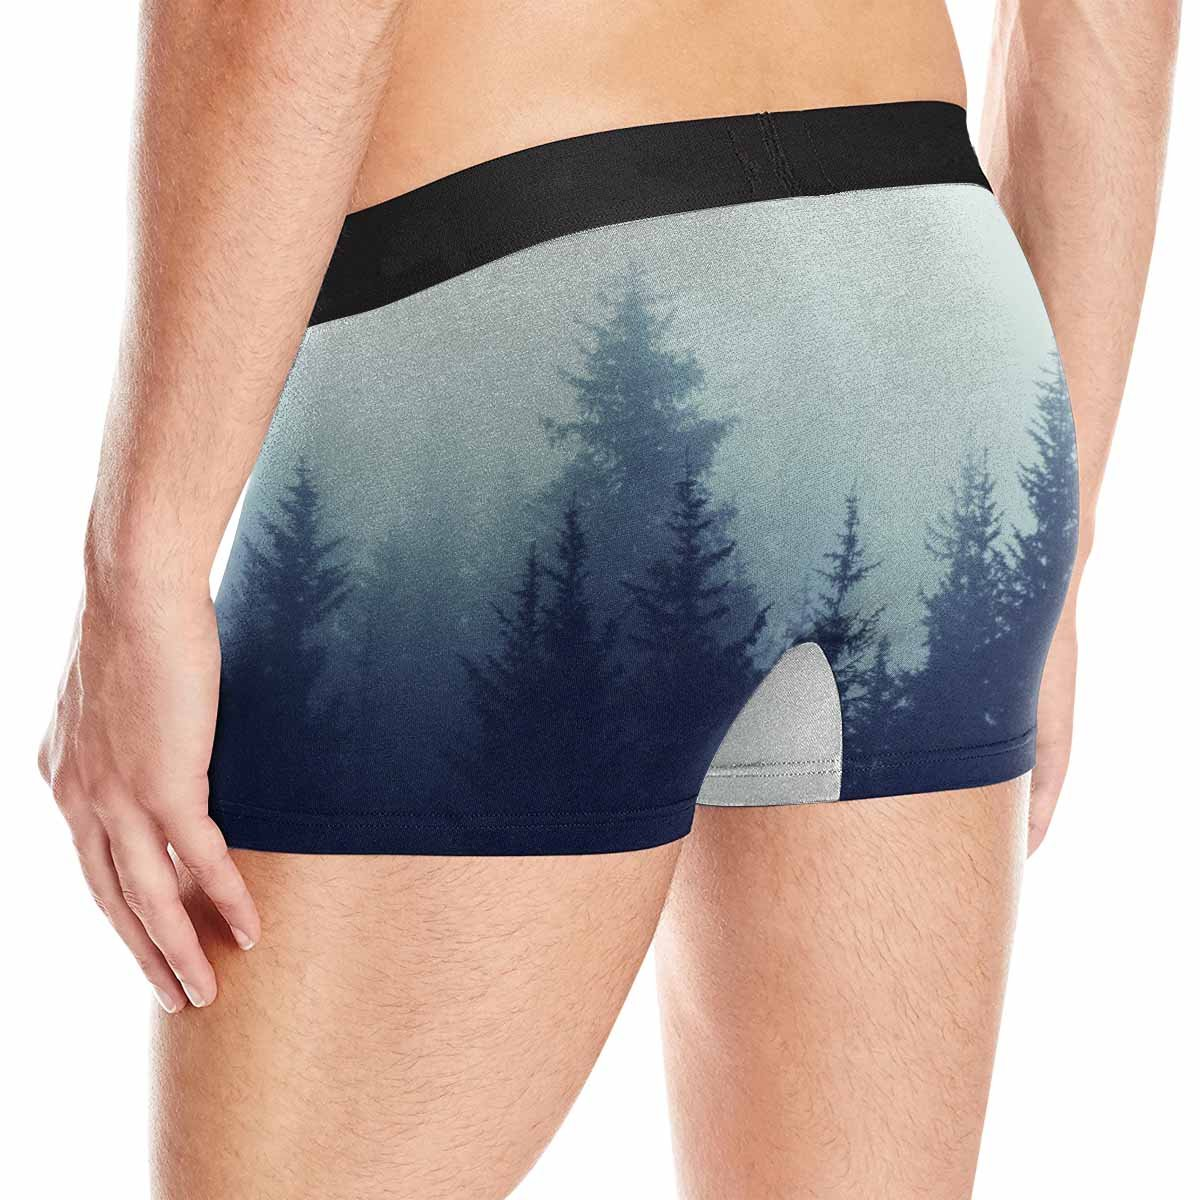 XS-3XL Color Toning INTERESTPRINT Boxer Briefs Mens Underwear Misty Mountain Forest Fog in Fir Forest on Mountain Slopes